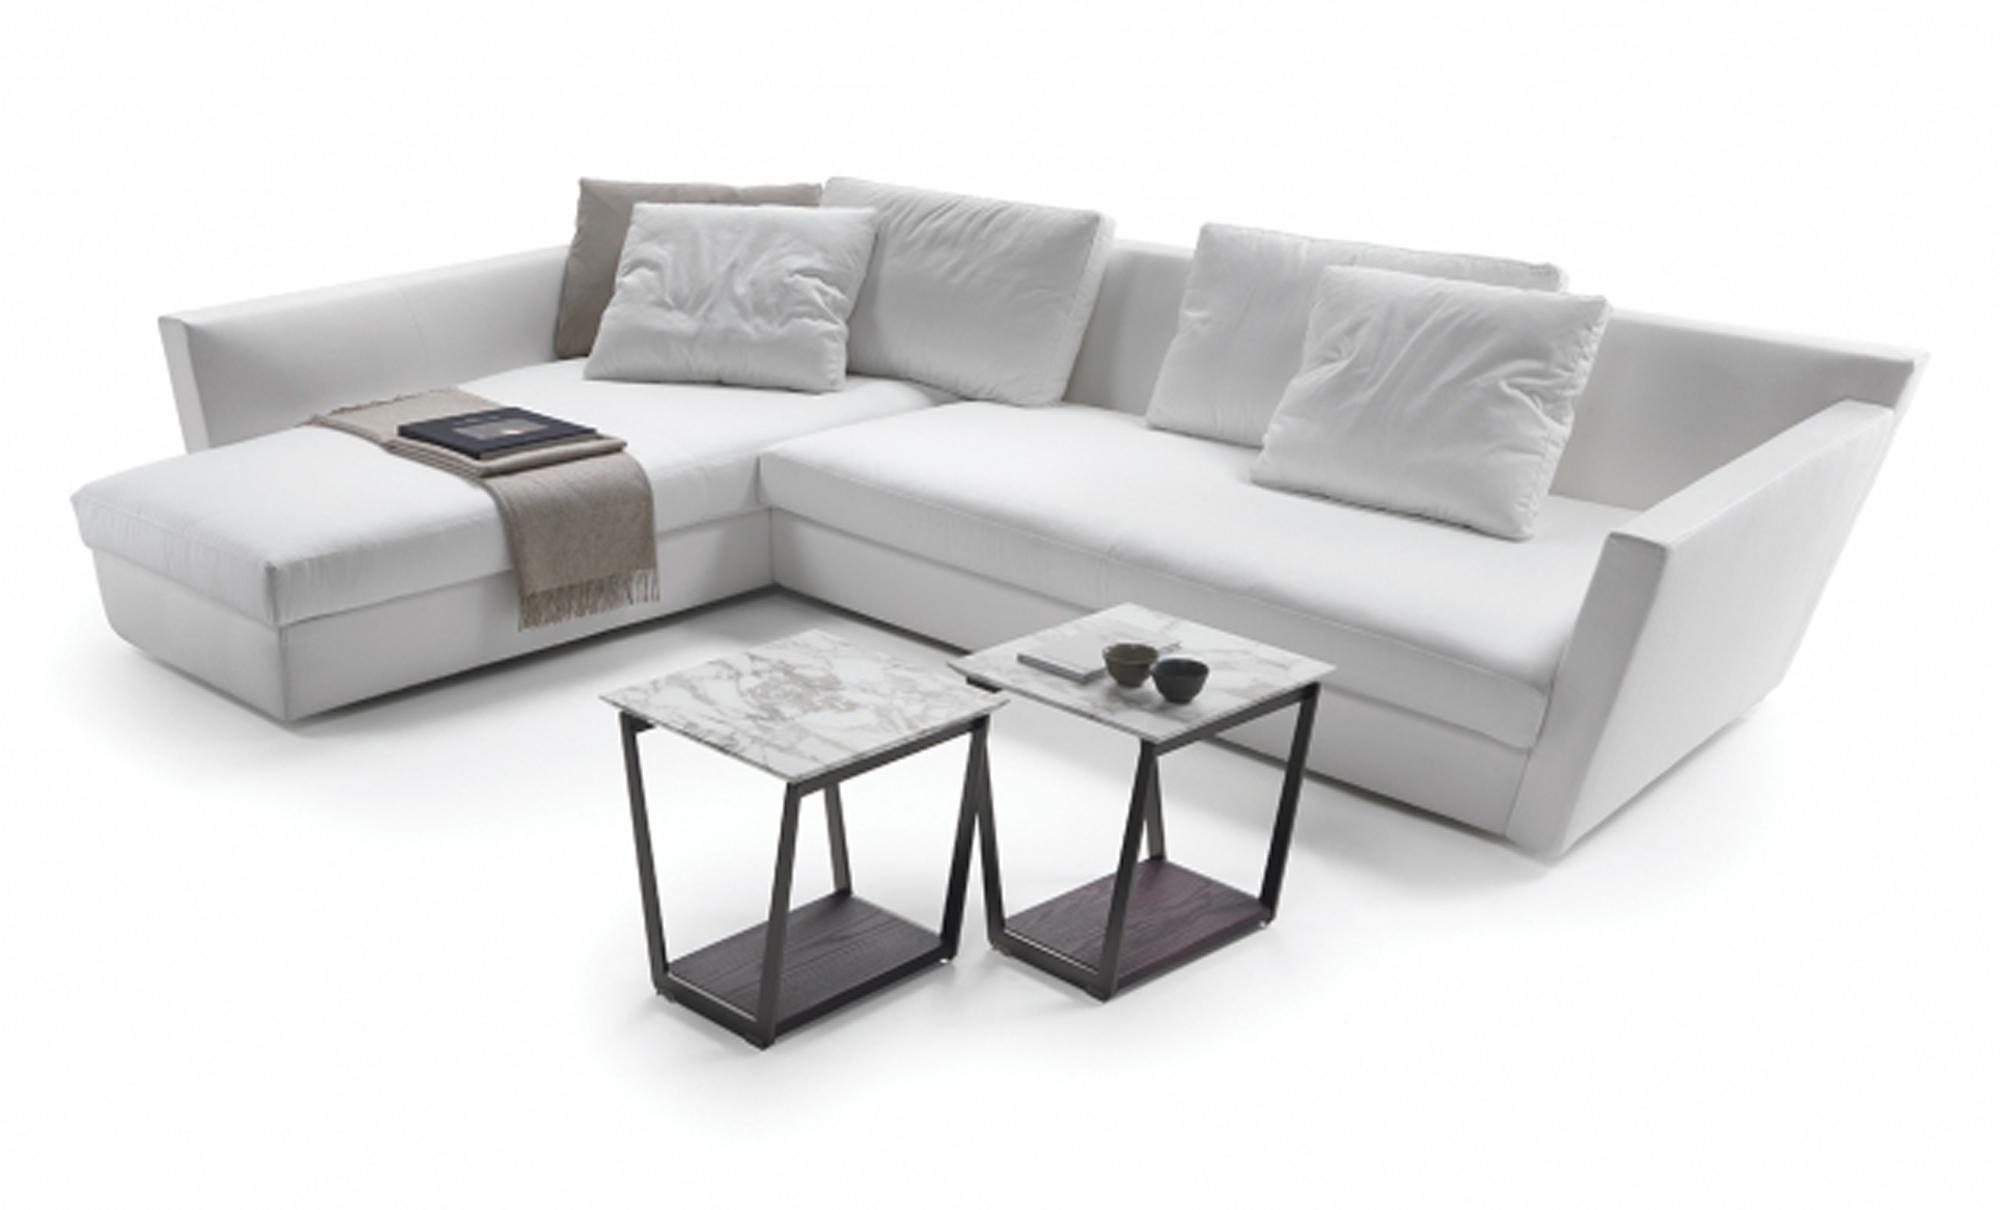 Modular Sofas – Fanuli Furniture For Modular Sofas (Image 11 of 20)